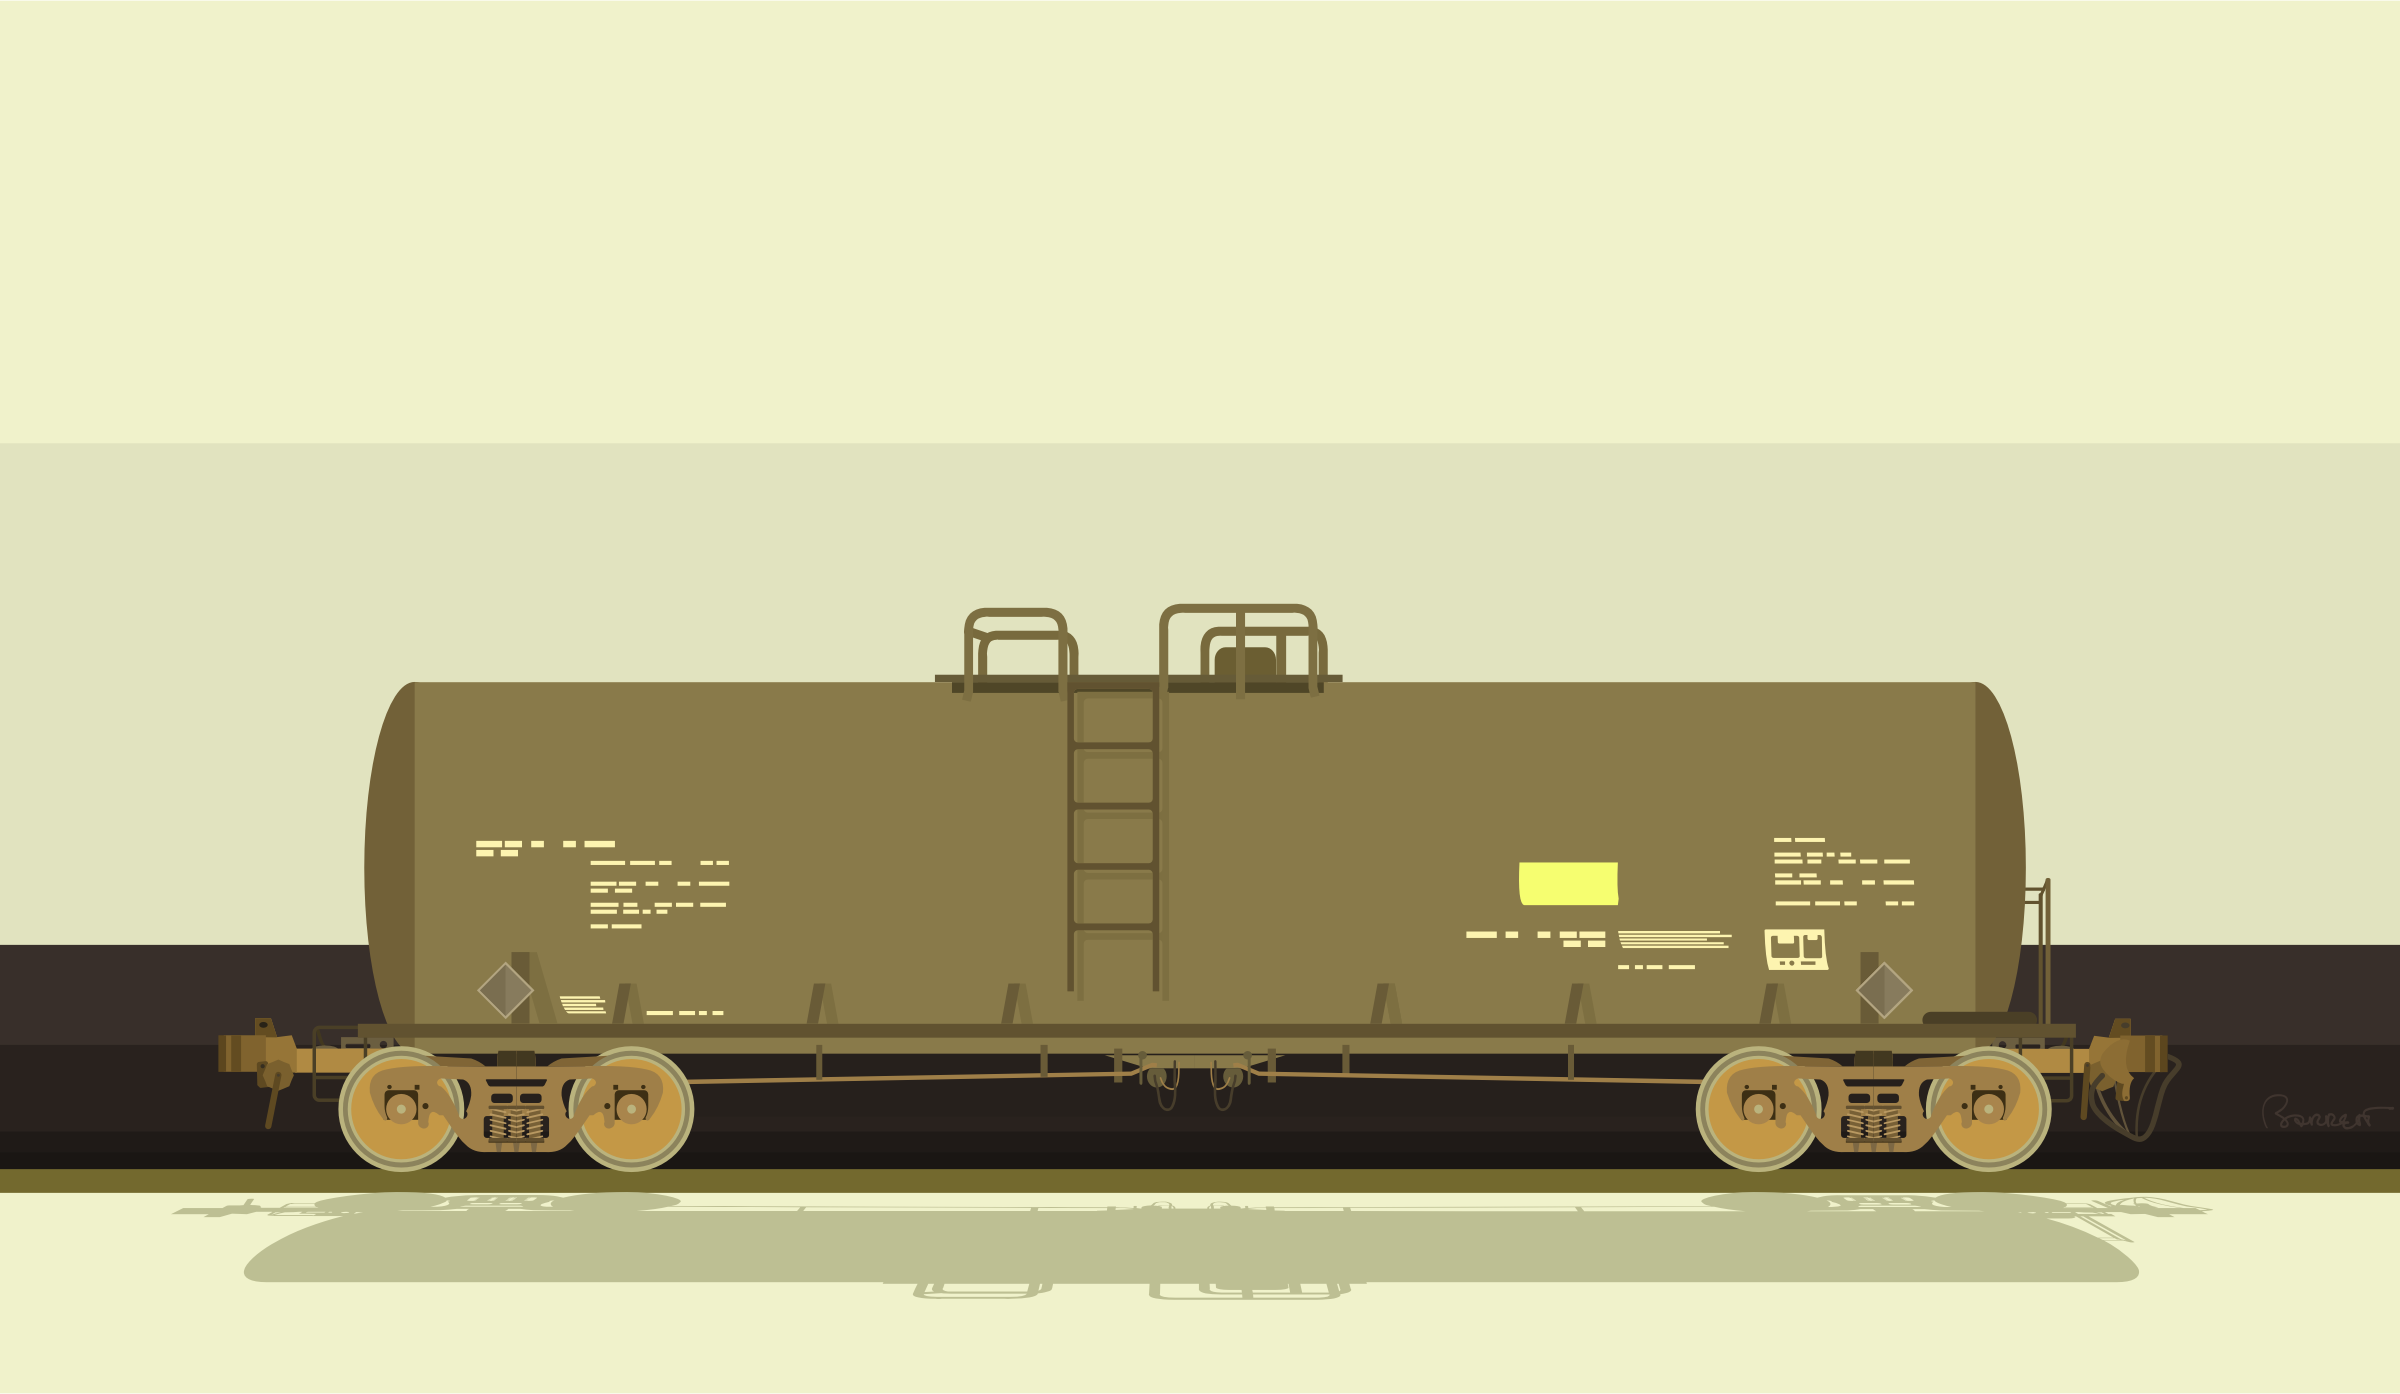 Railroad Tank Car by barrettward